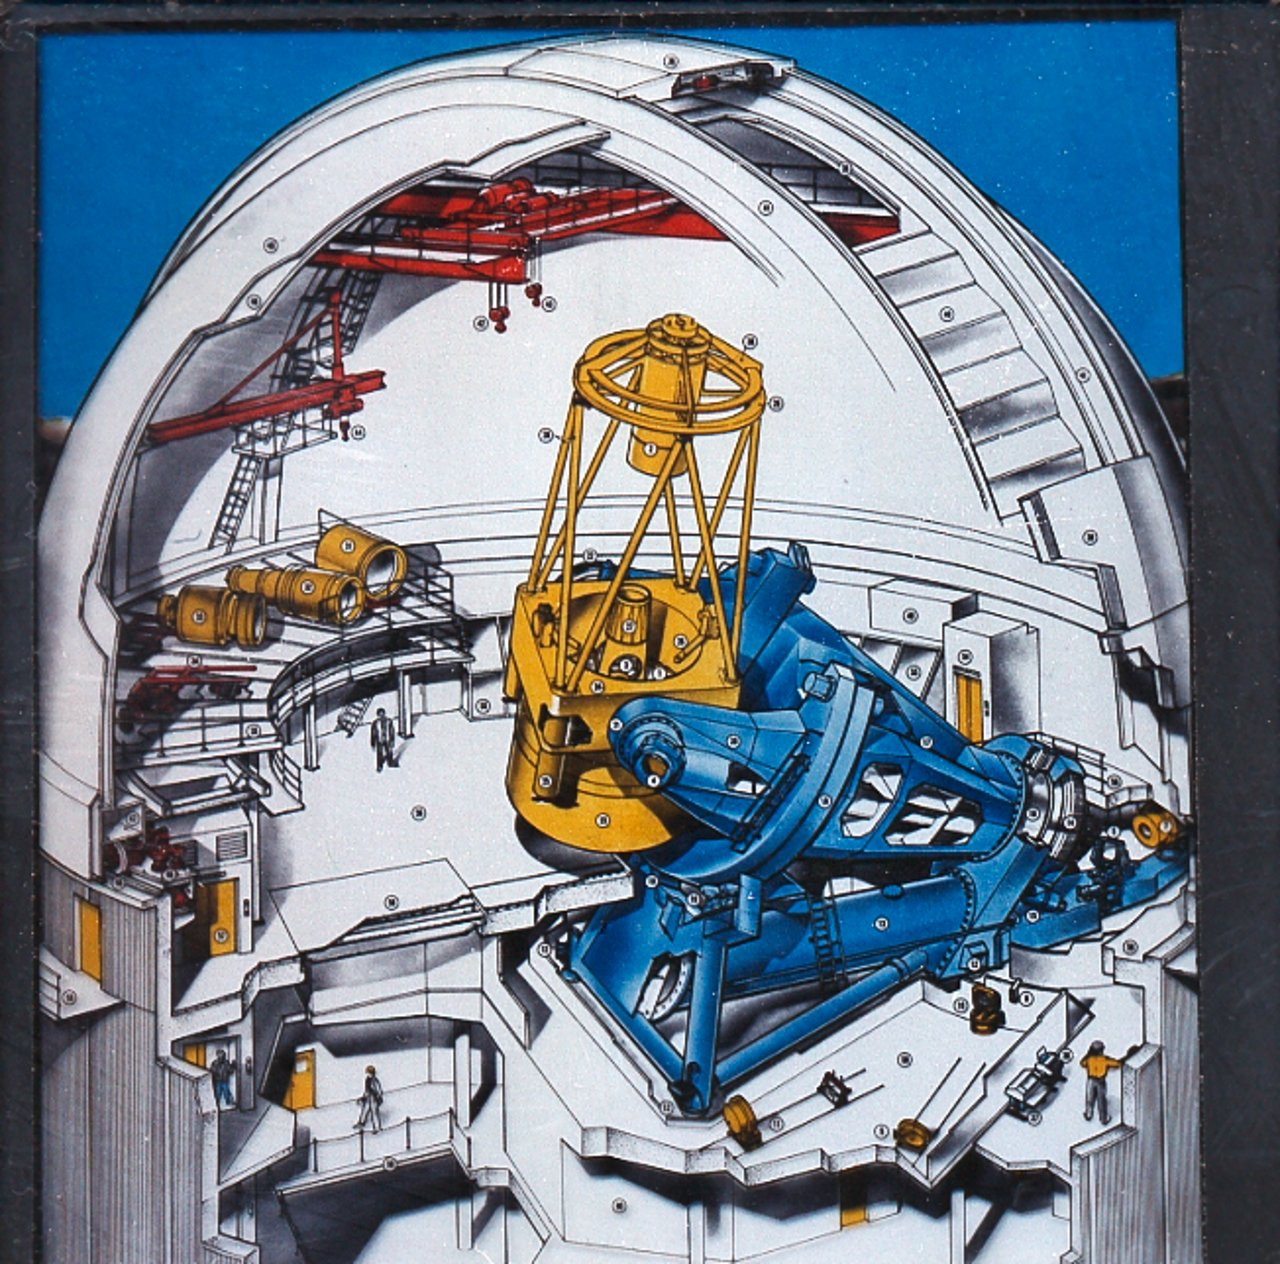 A Cut-away Poster of the ESO 3.6-metre Telescope Dome